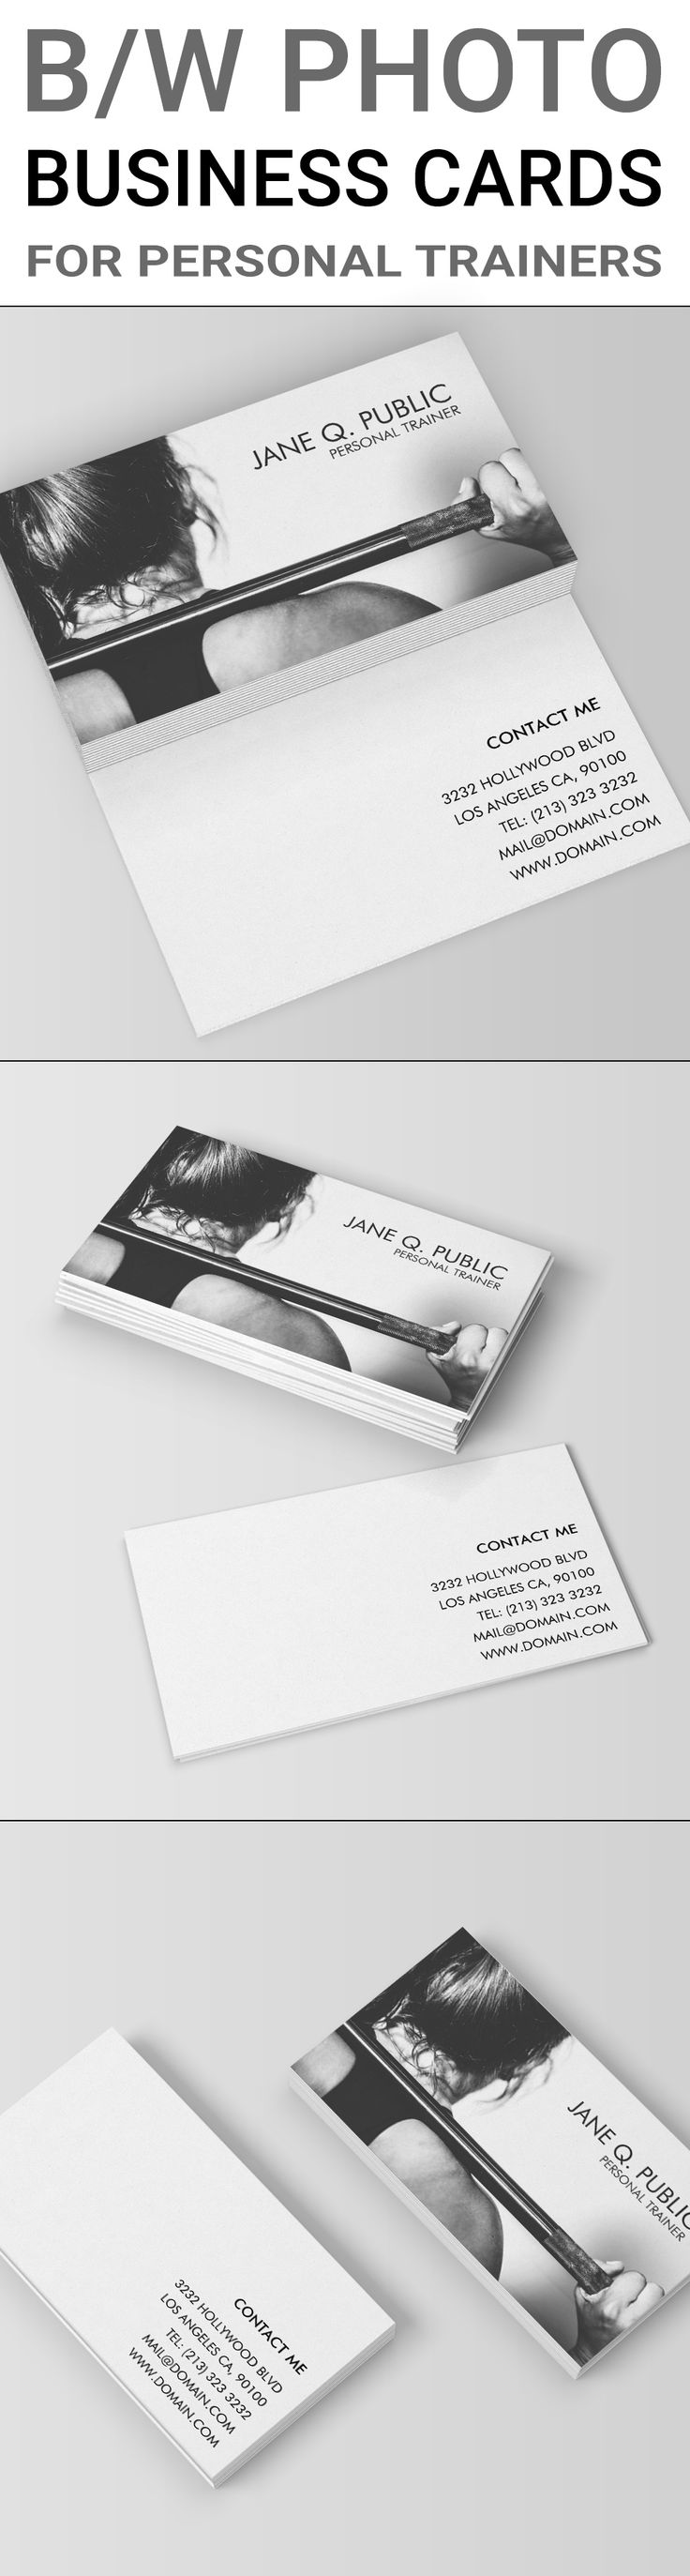 350 best Business Card Showcase images on Pinterest | Business card ...